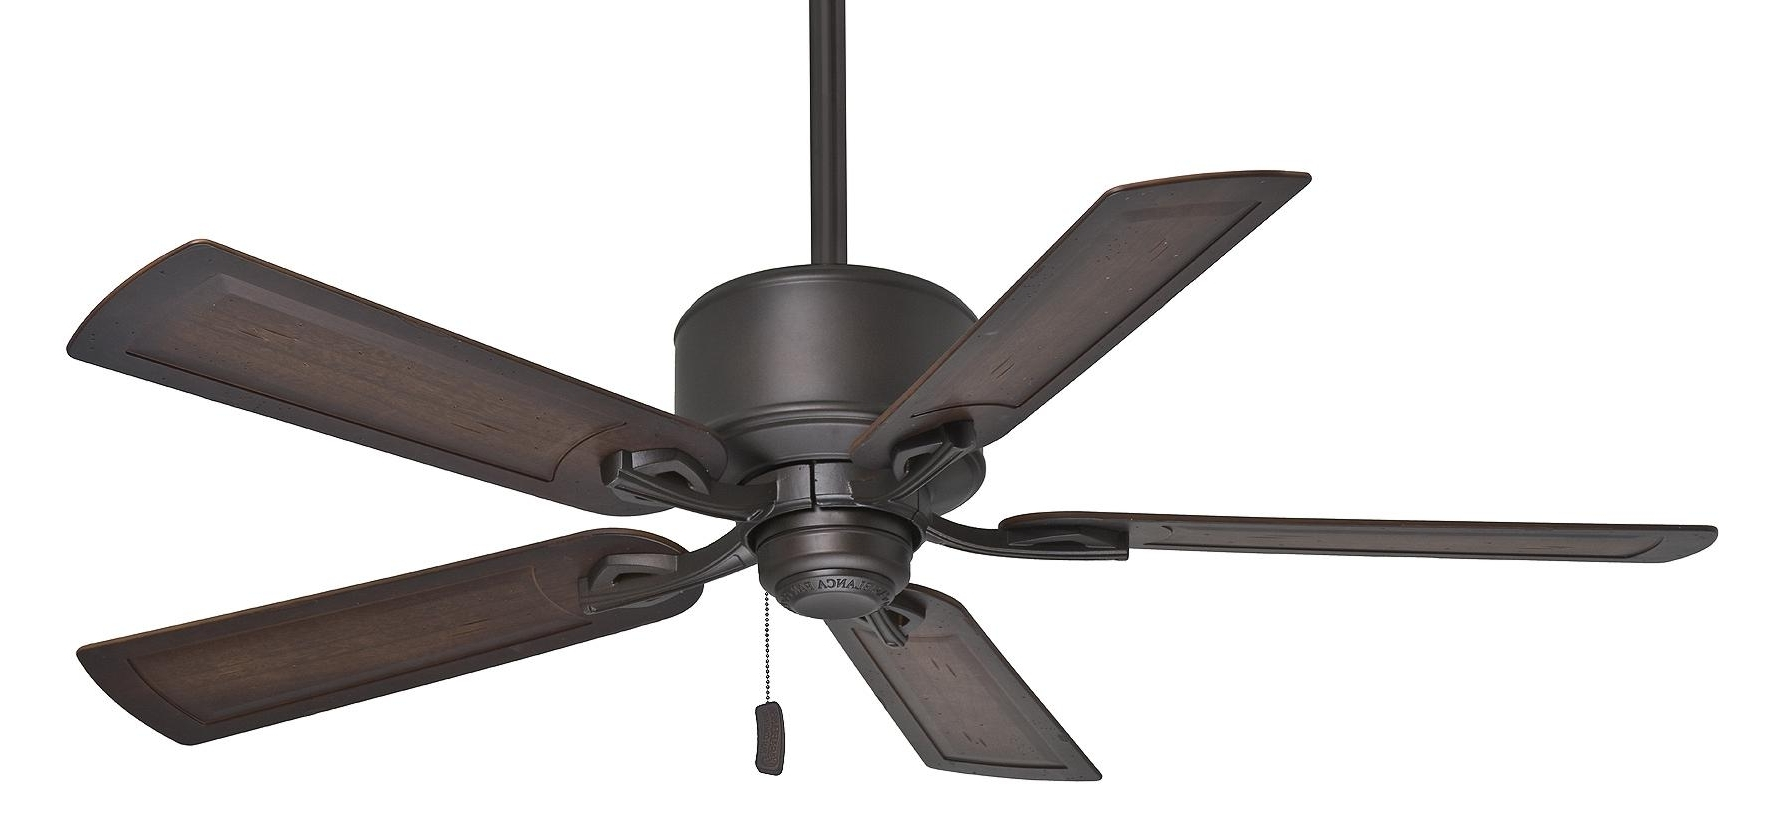 2019 Harvey Norman Outdoor Ceiling Fans Regarding Short Ceiling Fan – Pixball (View 3 of 20)